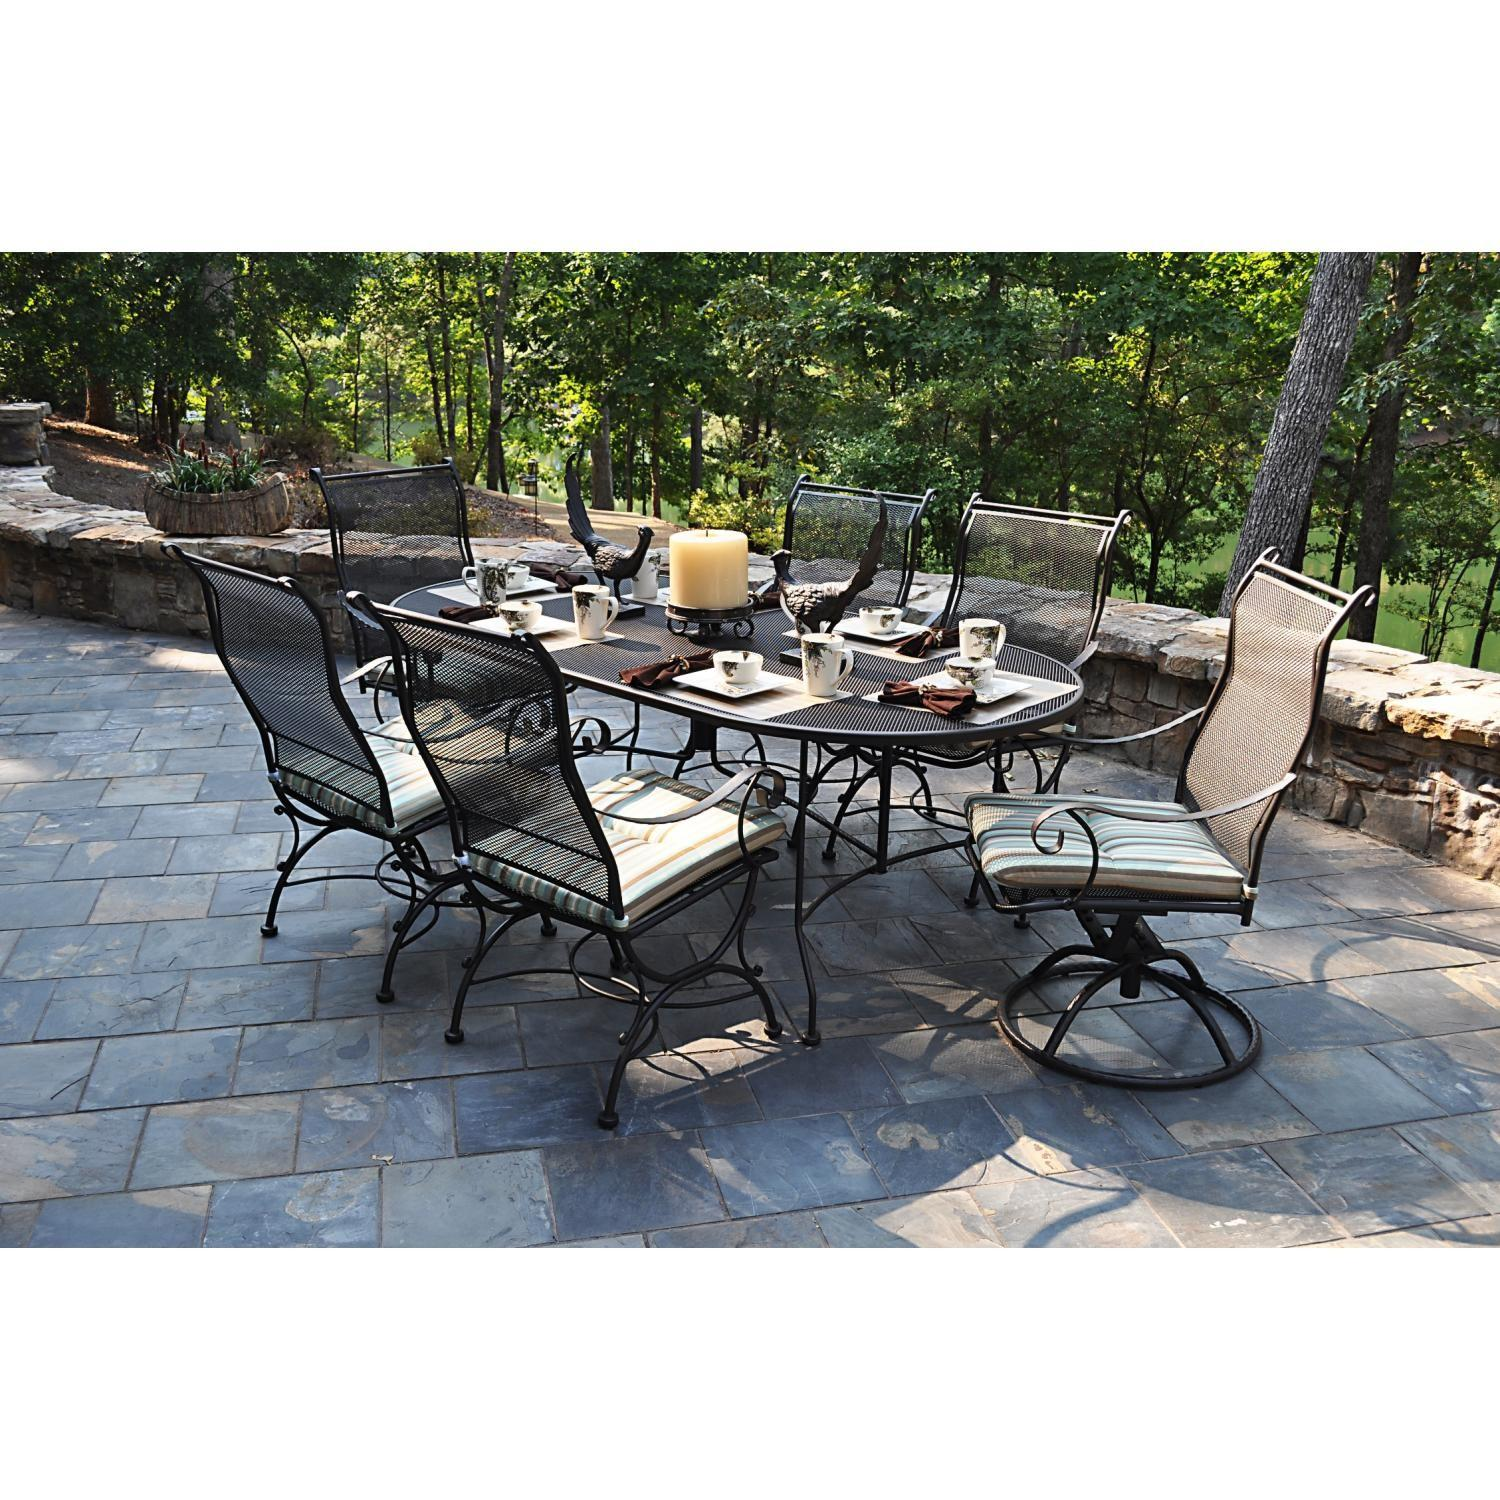 Furniture Art Stone Outdoor Top Table Black Iron